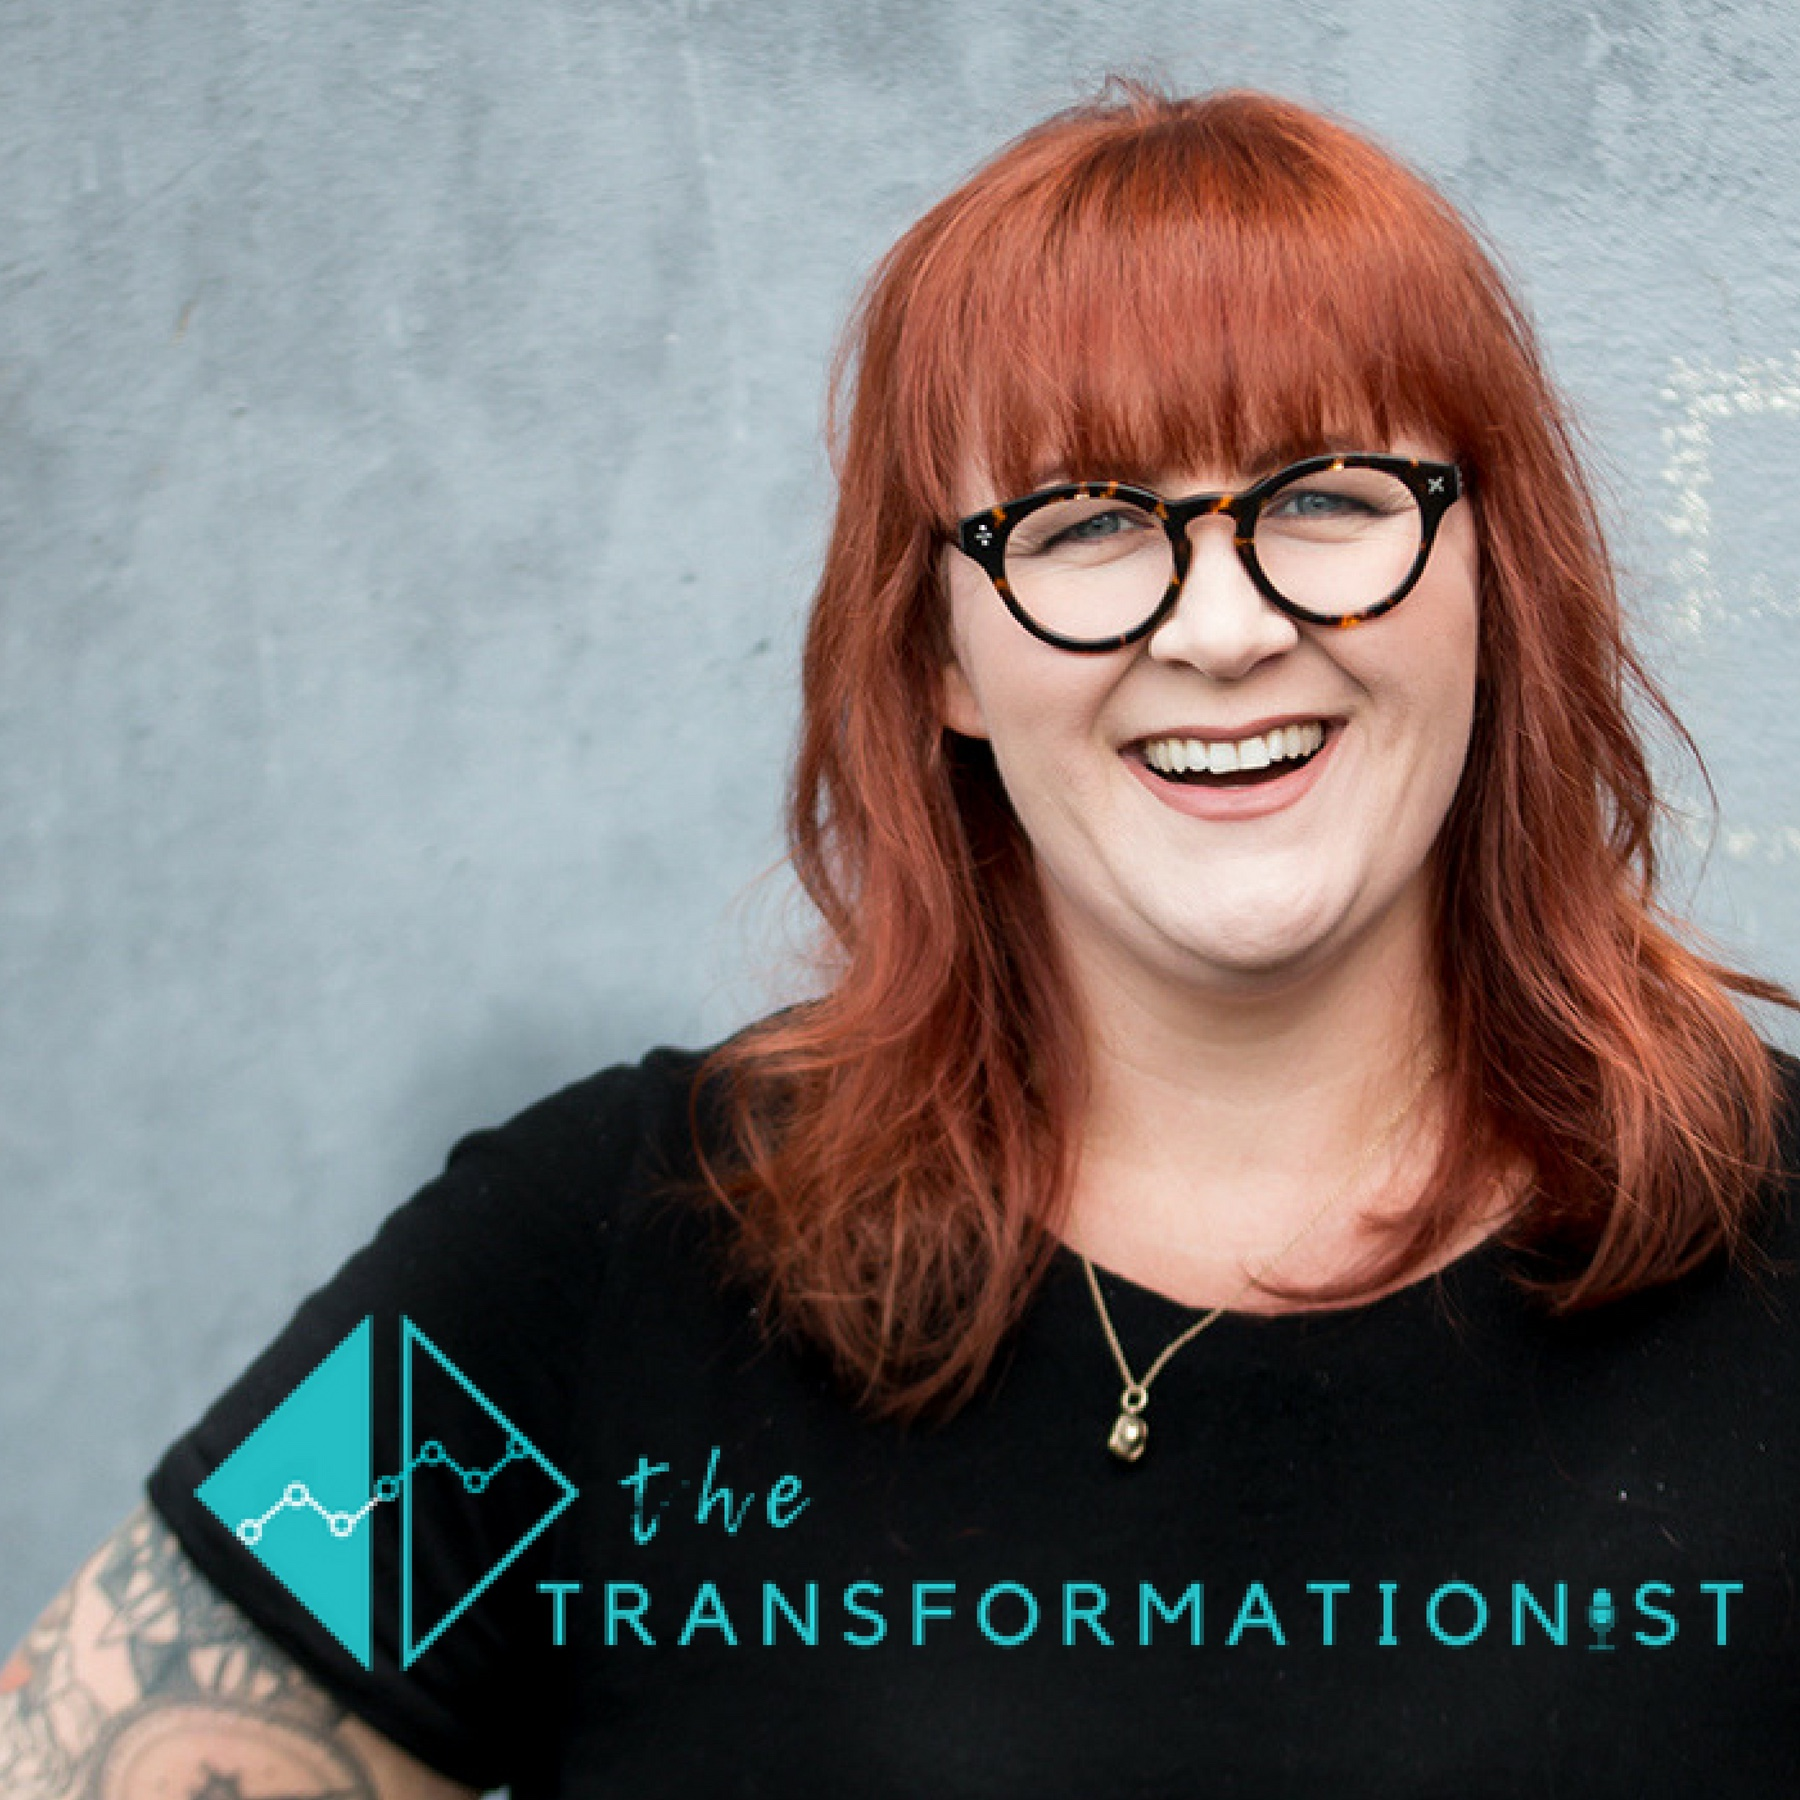 The Transformationist : A Podcast